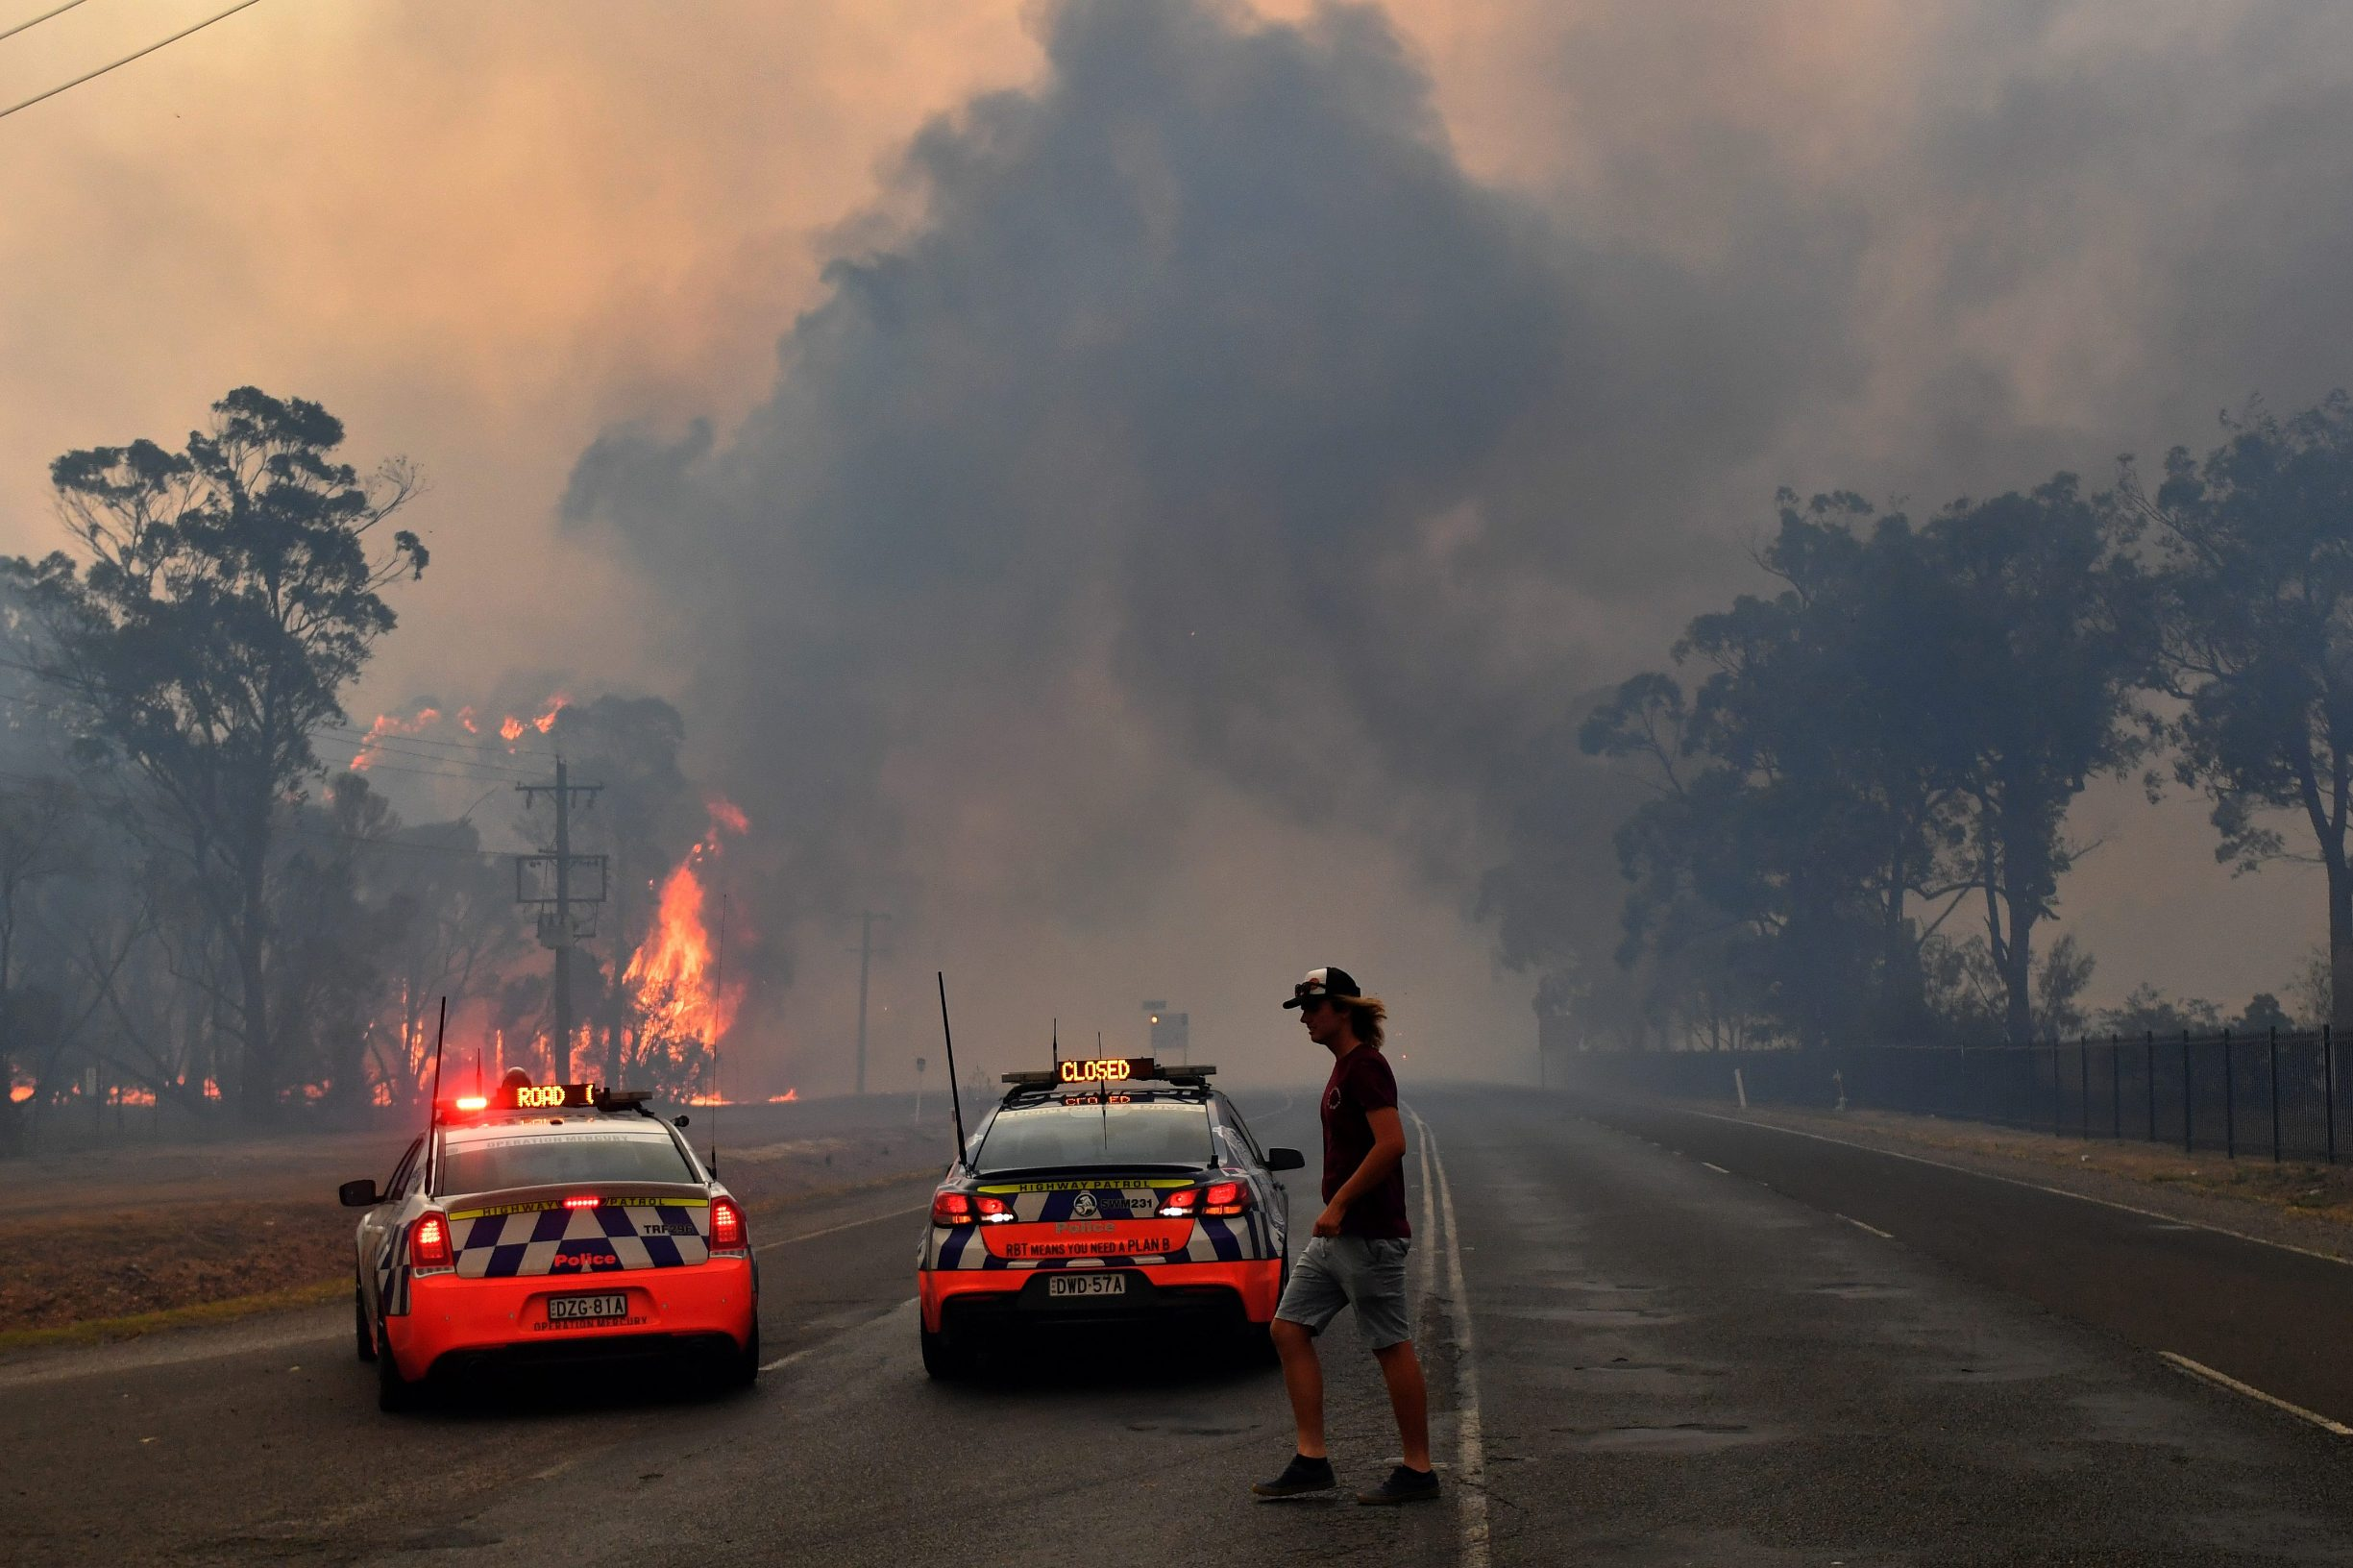 Police block the Old Hume Highway as a blaze jumps the road near the town of Tahmoor as the Green Wattle Creek Fire threatens a number of communities in the south west of Sydney, Australia, December 19, 2019. AAP Image/Dean Lewins/via REUTERS  ATTENTION EDITORS - THIS IMAGE WAS PROVIDED BY A THIRD PARTY. NO RESALES. NO ARCHIVE. AUSTRALIA OUT. NEW ZEALAND OUT. NO COMMERCIAL OR EDITORIAL SALES IN NEW ZEALAND. NO COMMERCIAL OR EDITORIAL SALES IN AUSTRALIA.